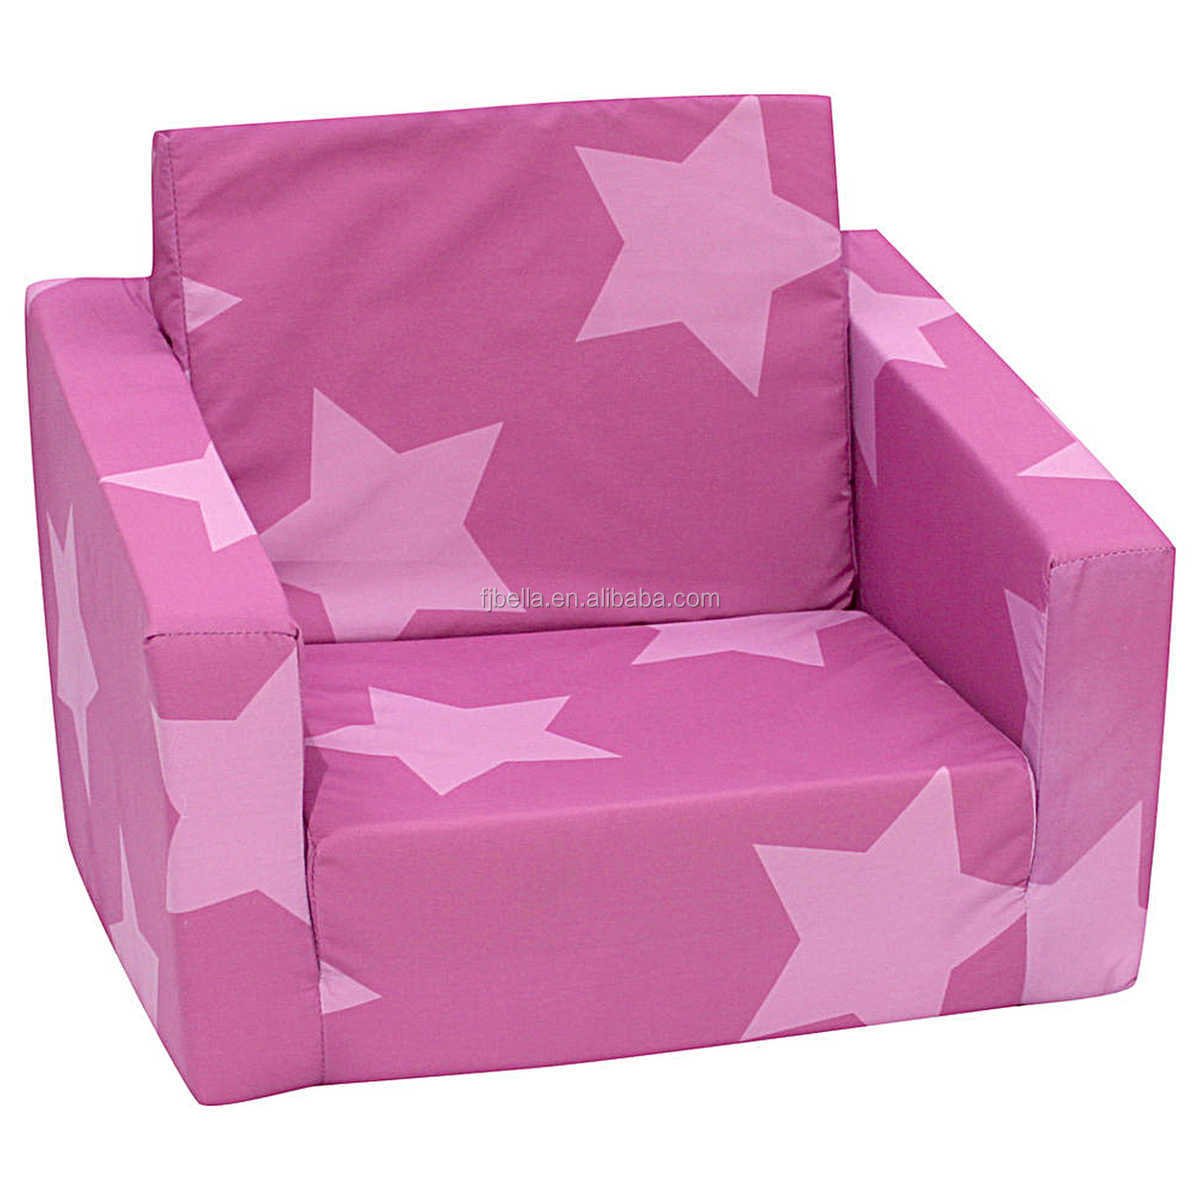 Memory Foam Child Sofa Lounger Folding Sofa Bed Lightweight Kid Party Sofa with Pink with Stars